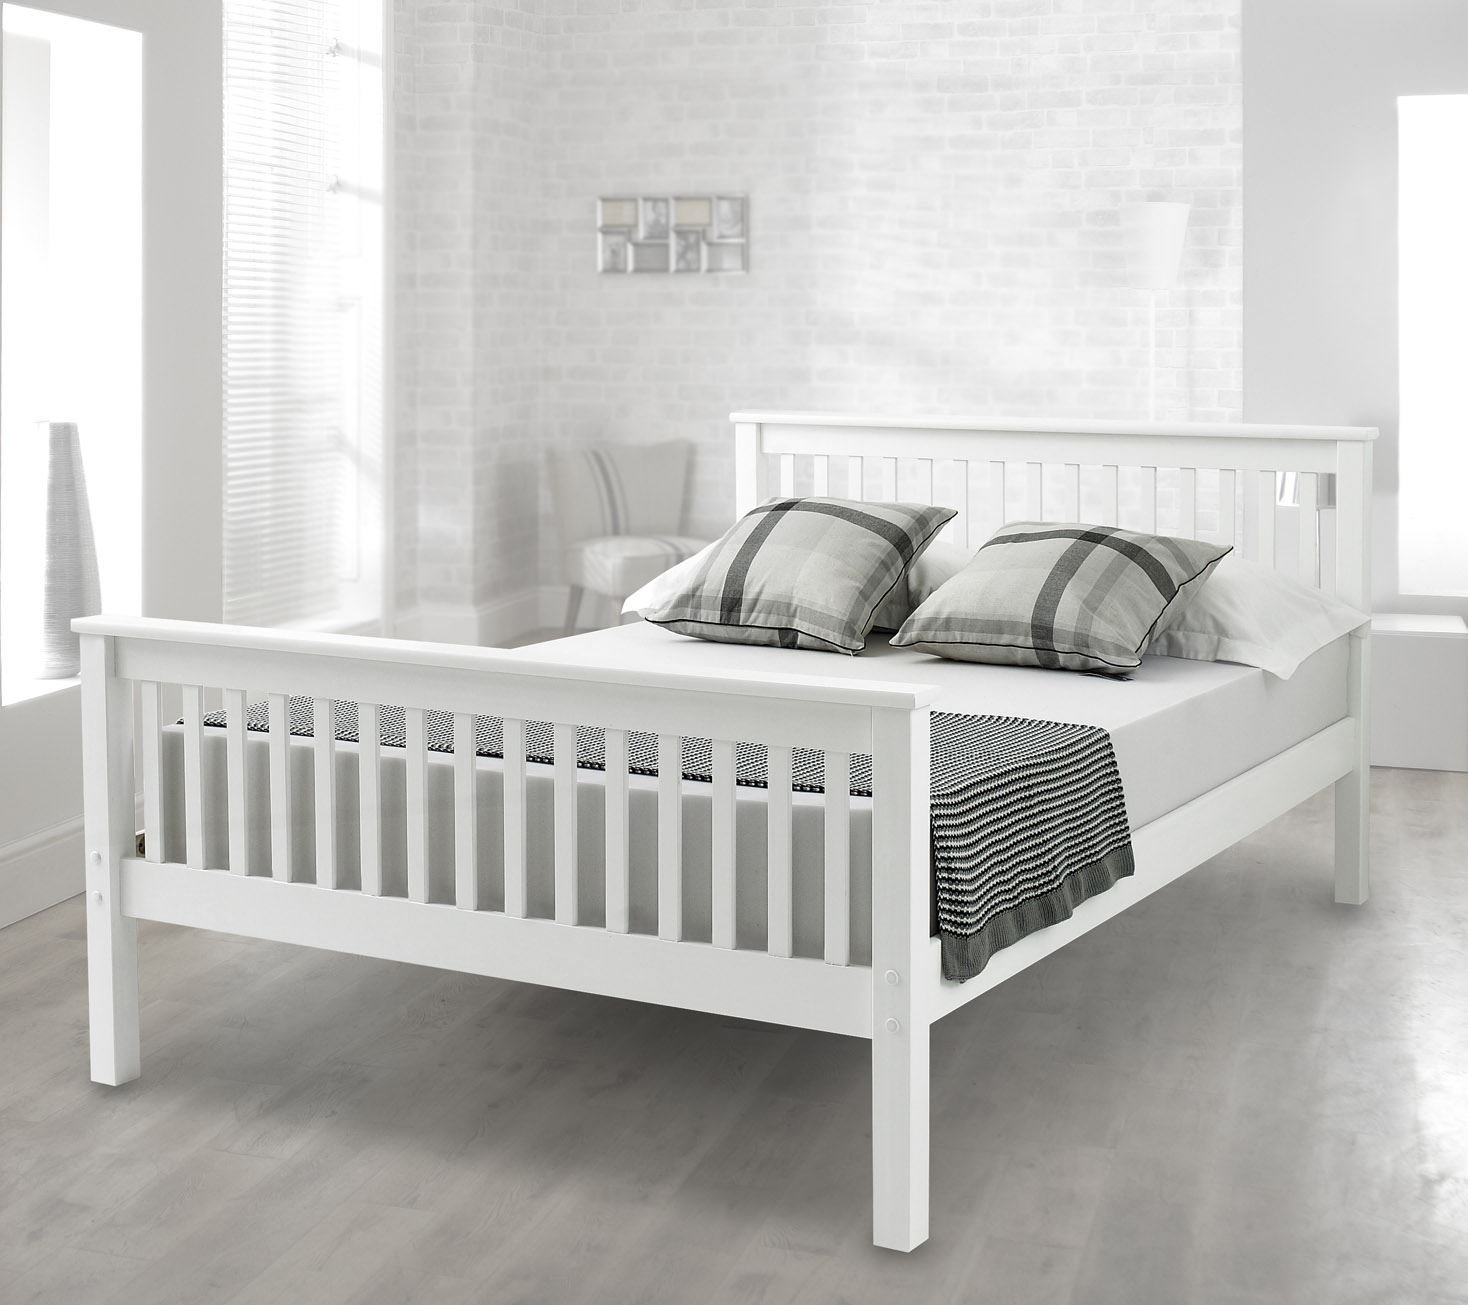 happy beds lisbon high foot end bed contemporary white finish  - happy beds lisbon high foot end bed contemporary white finish solid pinewood frame sleep ' small double  x  cm amazoncouk kitchen  home